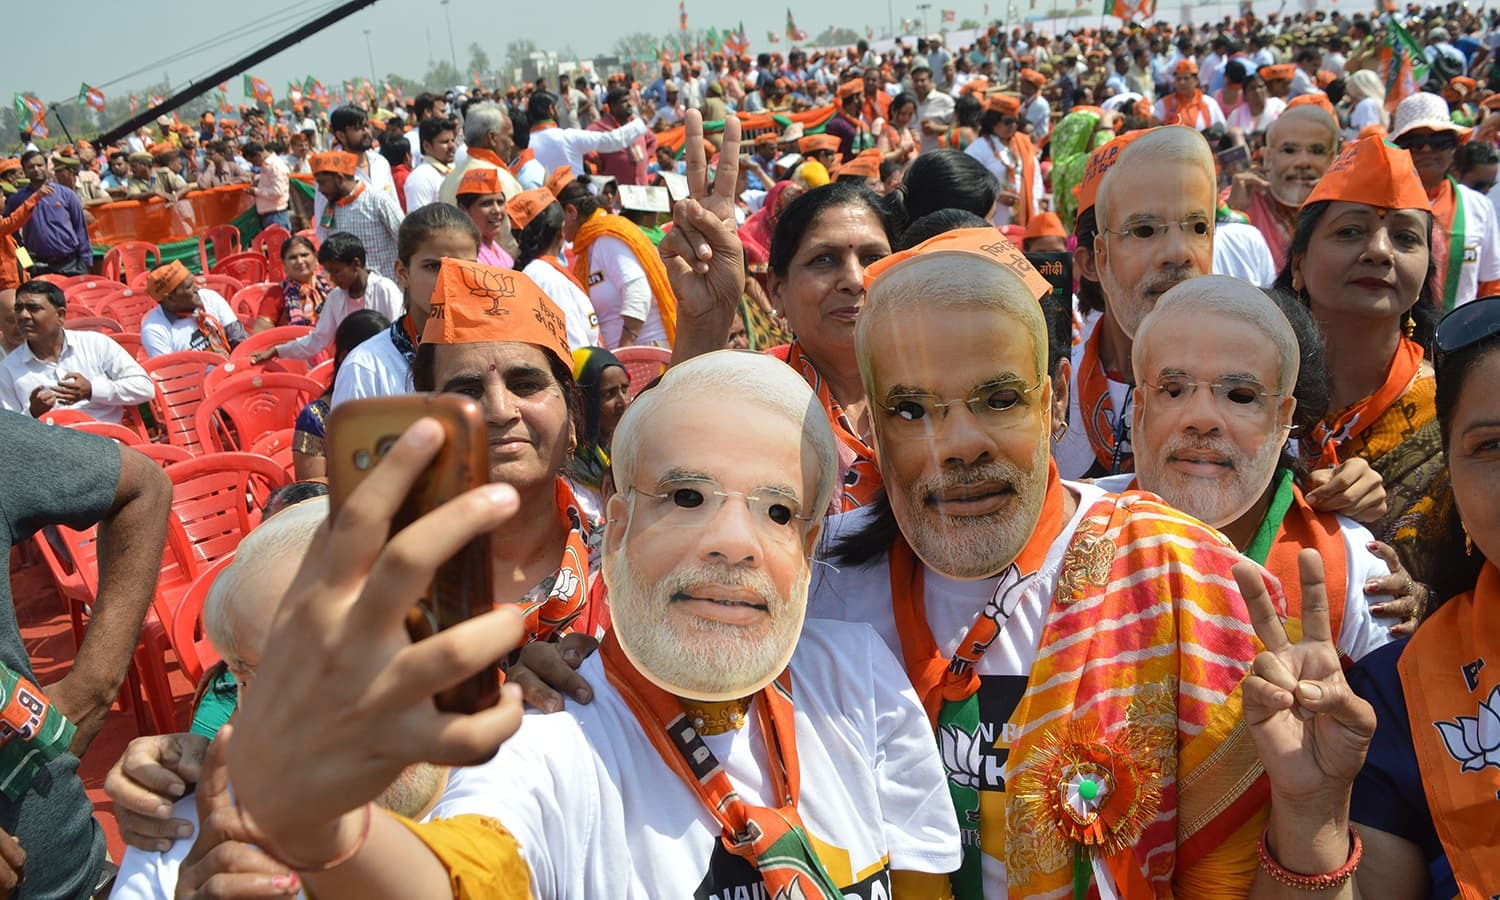 Bhartiya Janata party (BJP) take selfie pictures as they listen Prime Minister Narendra Modi speech during a rally in Meerut in Uttar Pradesh on March 28, 2019. (Photo by STR / AFP) — AFP or licensors